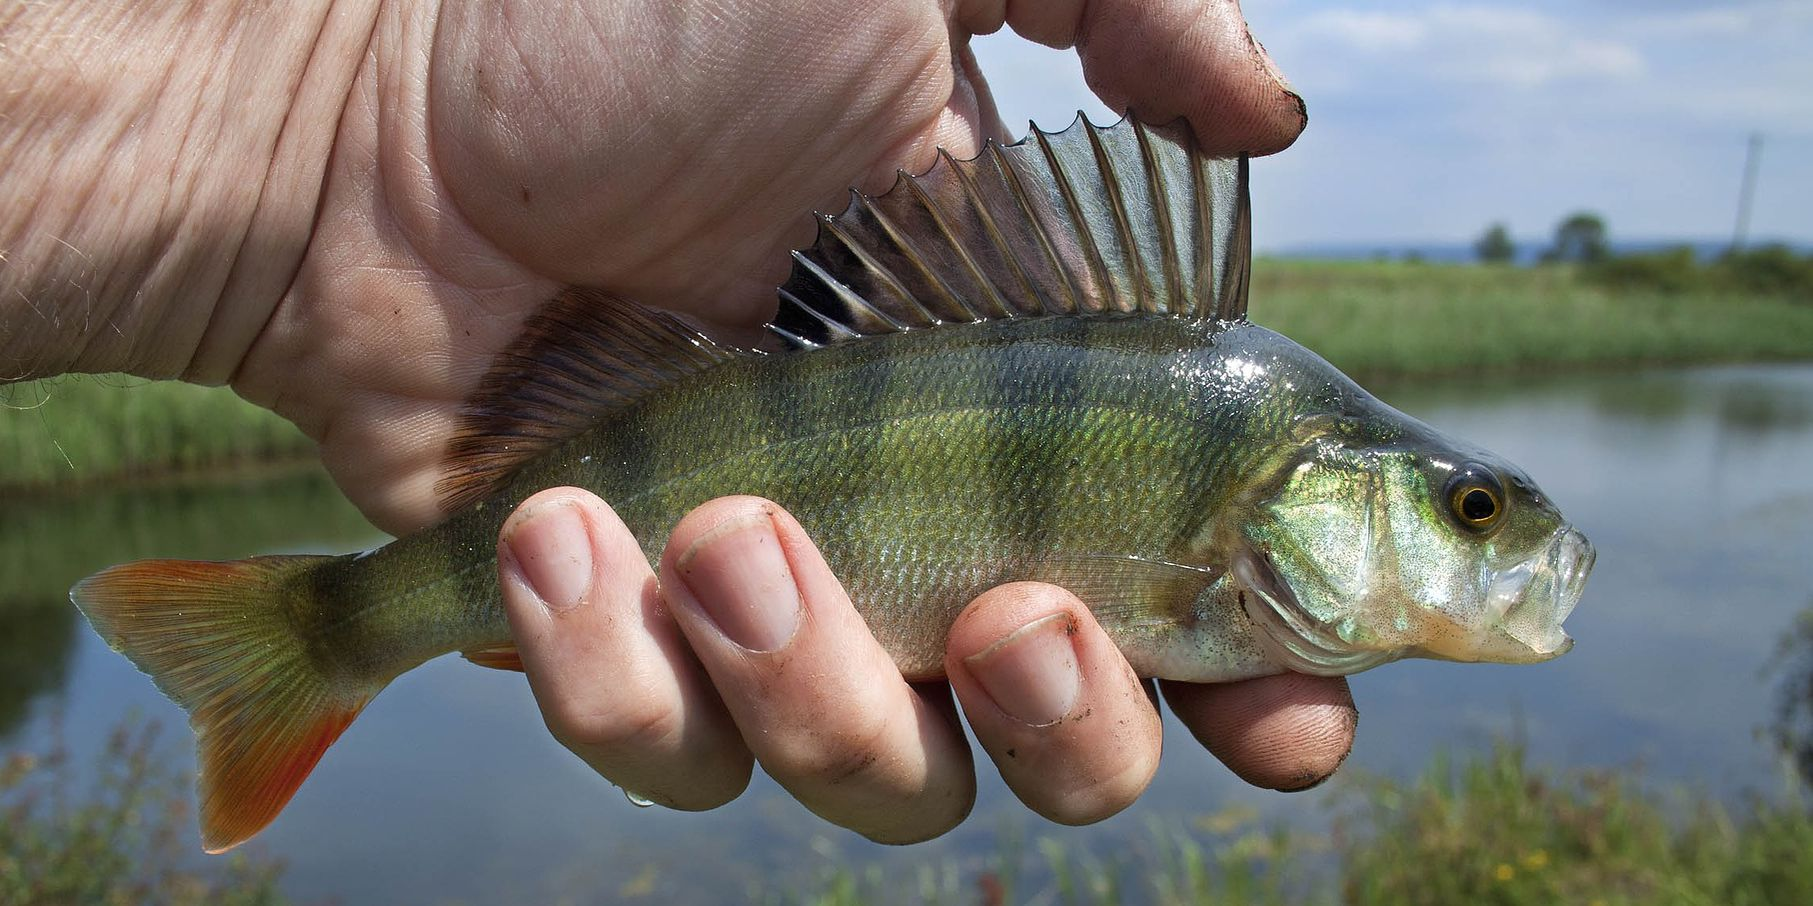 Virginia free fishing days scheduled for June 7-9